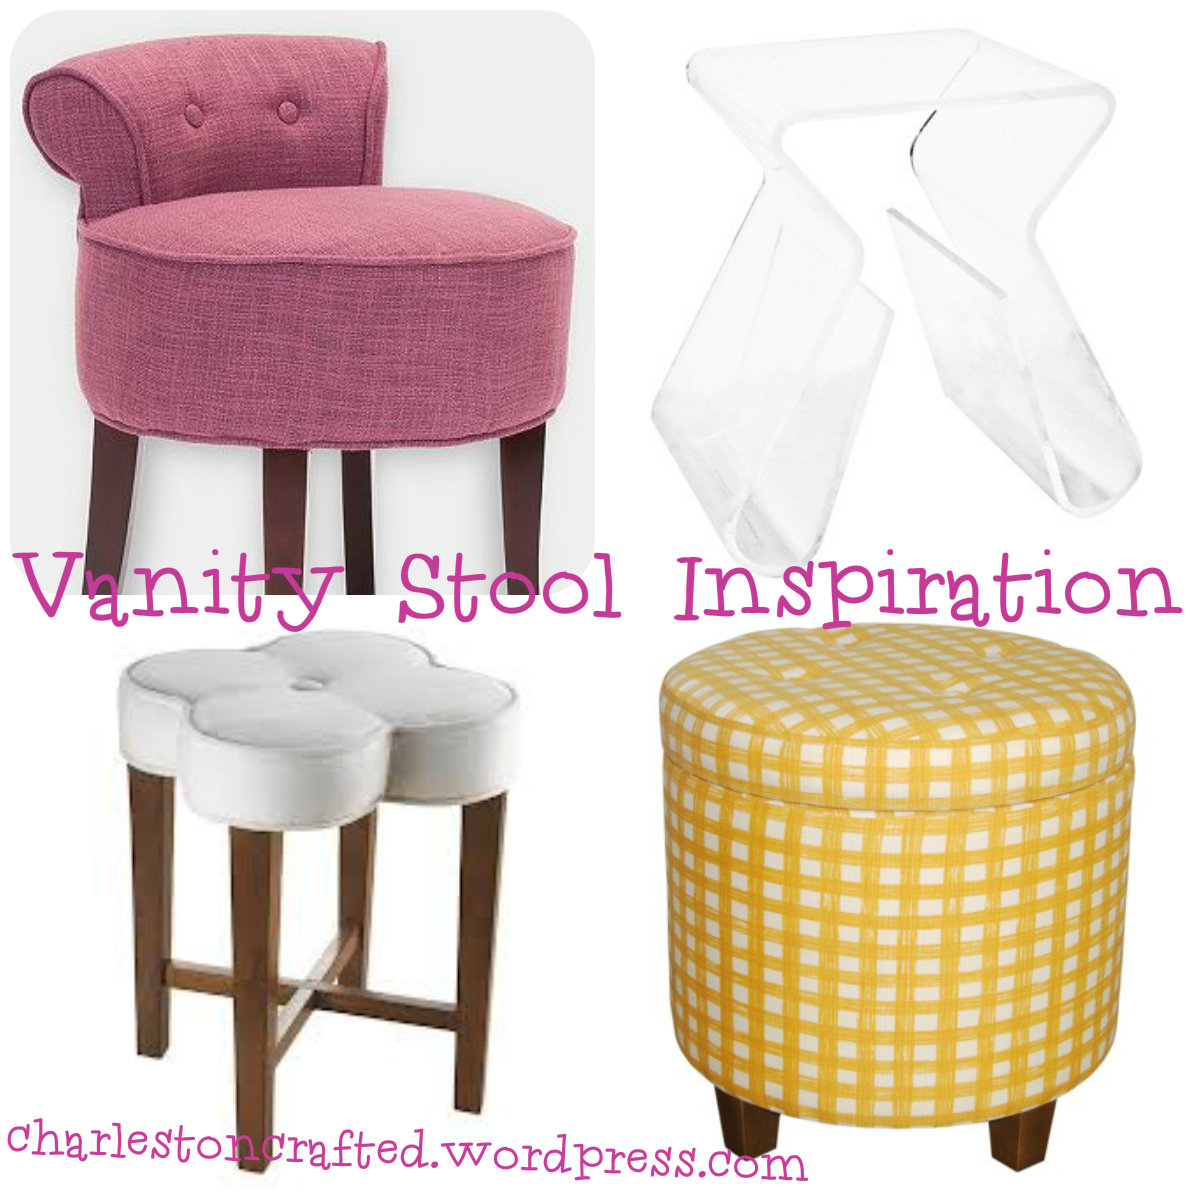 Seeking Inspiration for a new Vanity Stool! • Charleston Crafted